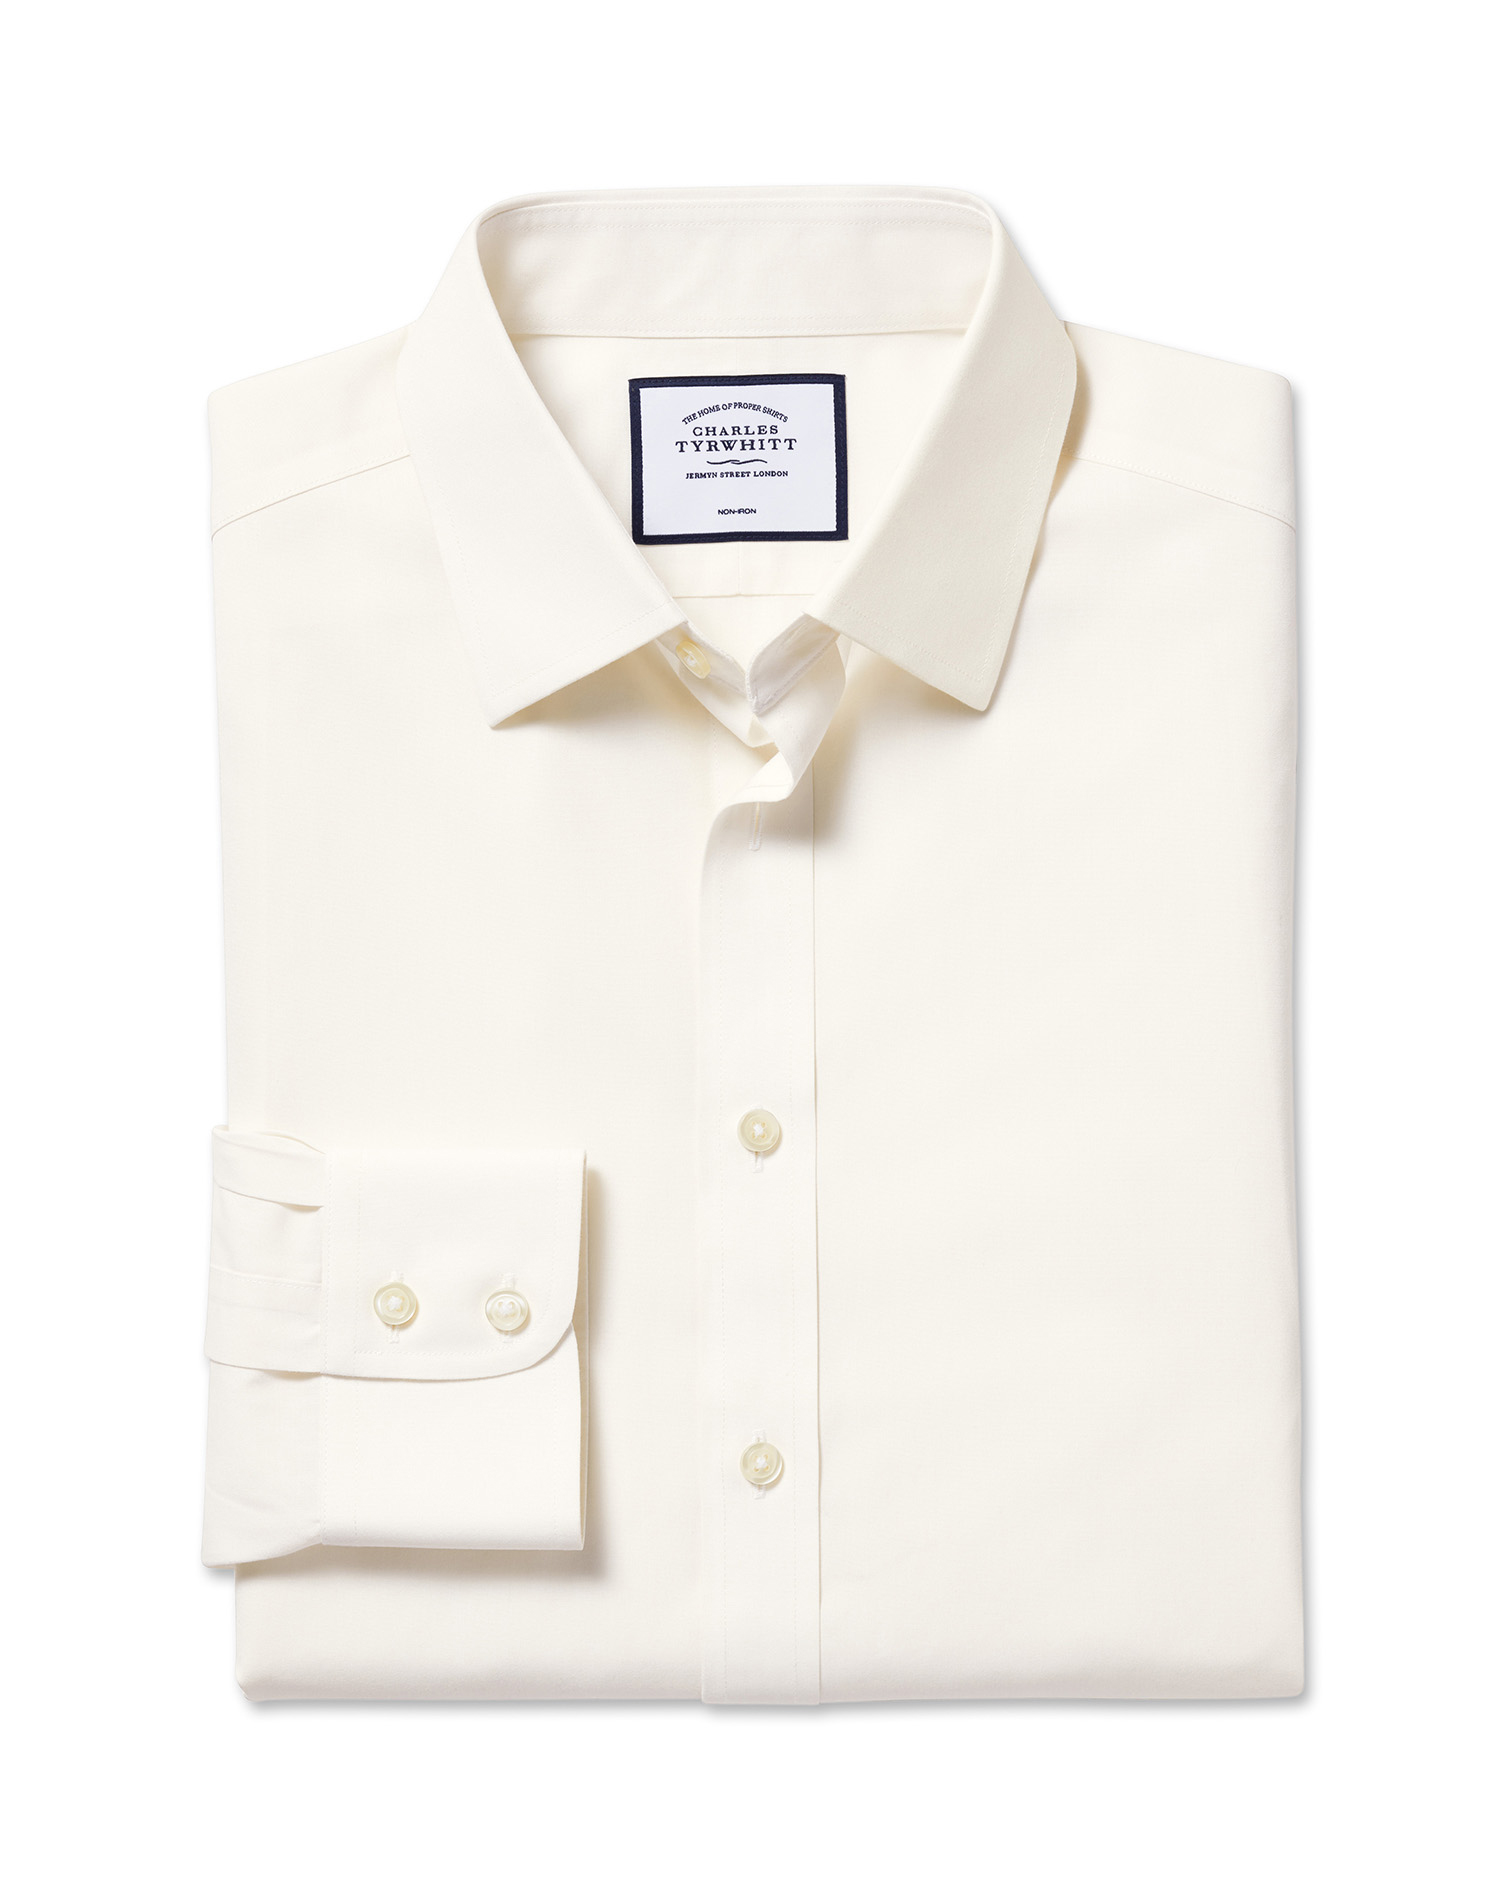 Classic Fit Non-Iron Poplin Cream Cotton Formal Shirt Single Cuff Size 15/34 by Charles Tyrwhitt